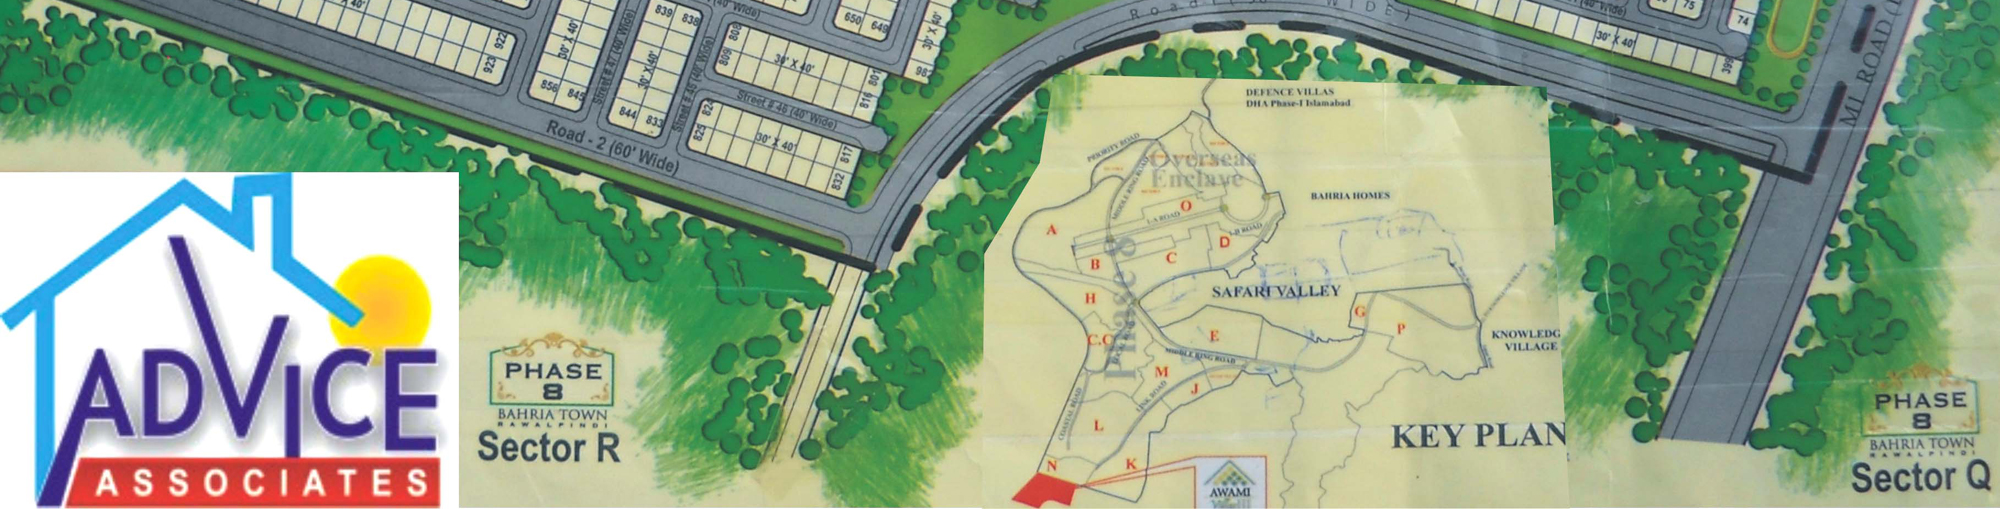 Map avami villas 3 Bahriatown islamabad